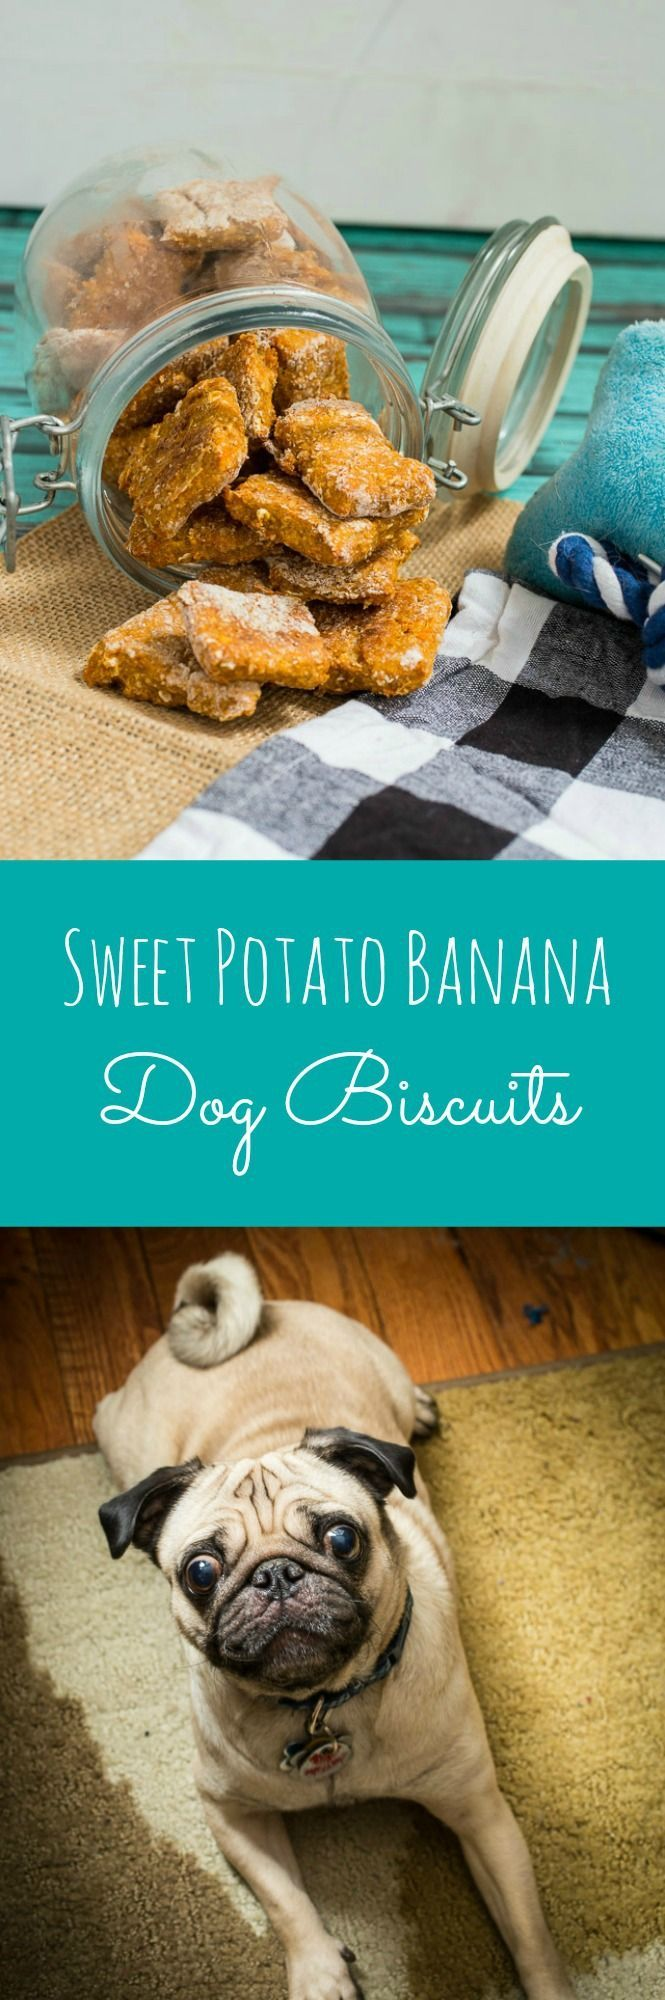 Make these sweet potato banana dog biscuits for pups with a sweet-tooth! High in fiber and antioxidants, they're a healthy treat.